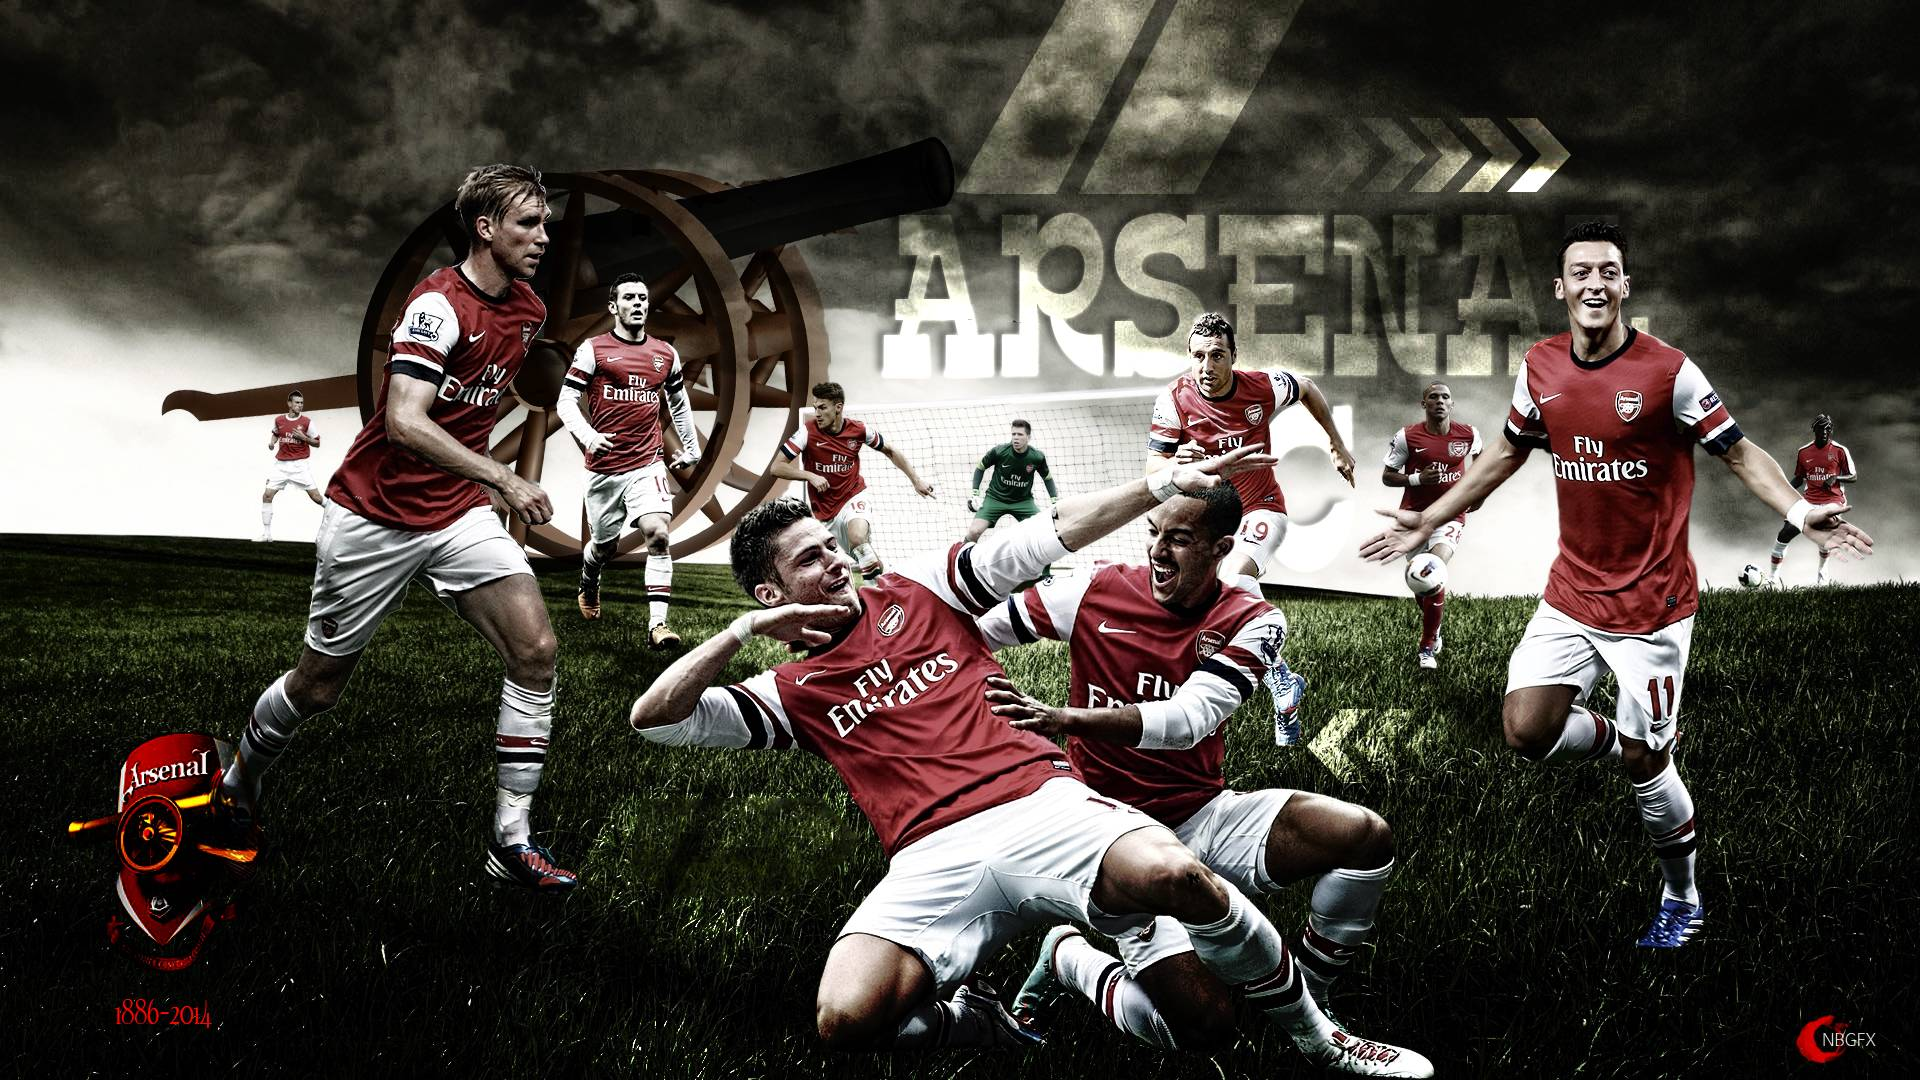 ARSENAL FC WALLPAPER- HD by nirmalyabasu5 on DeviantArt